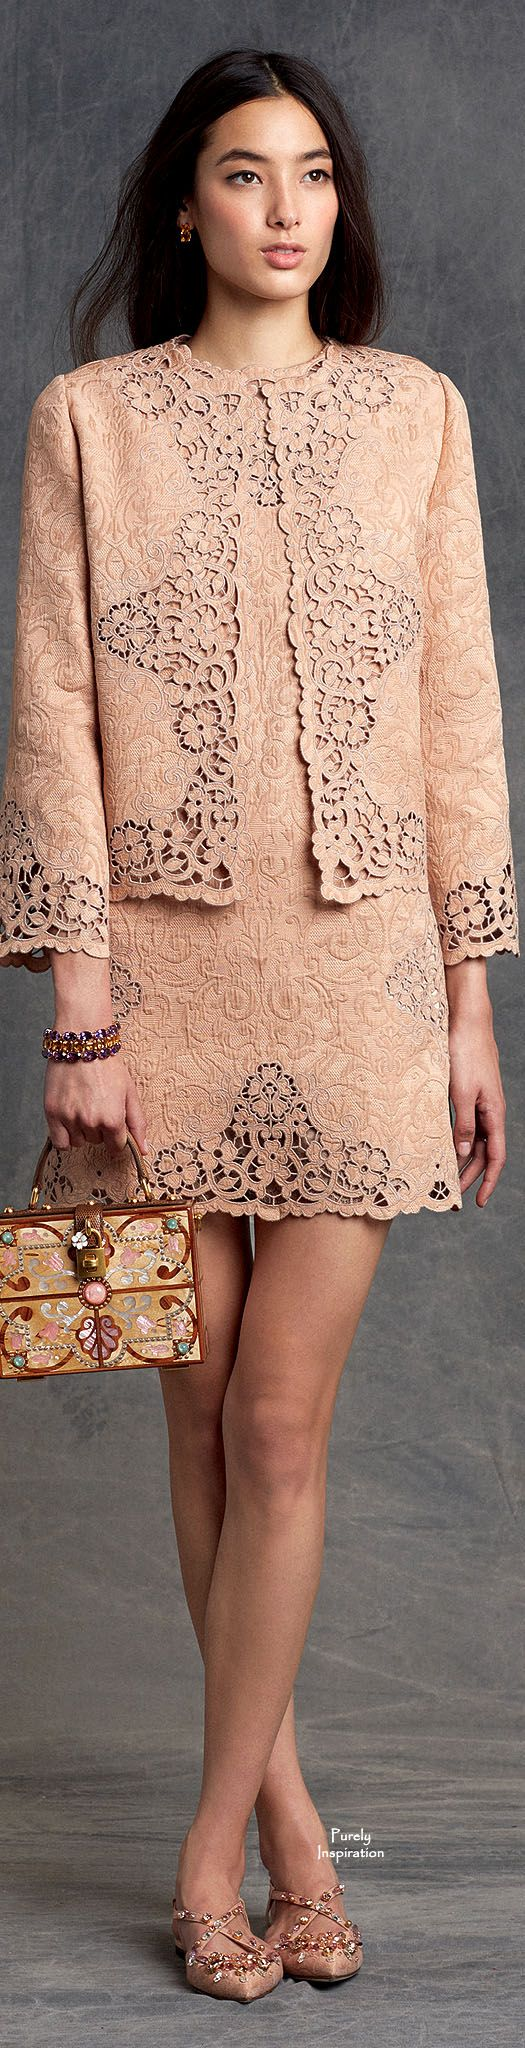 Dolce&Gabbana Women's RTW | Purely Inspiration